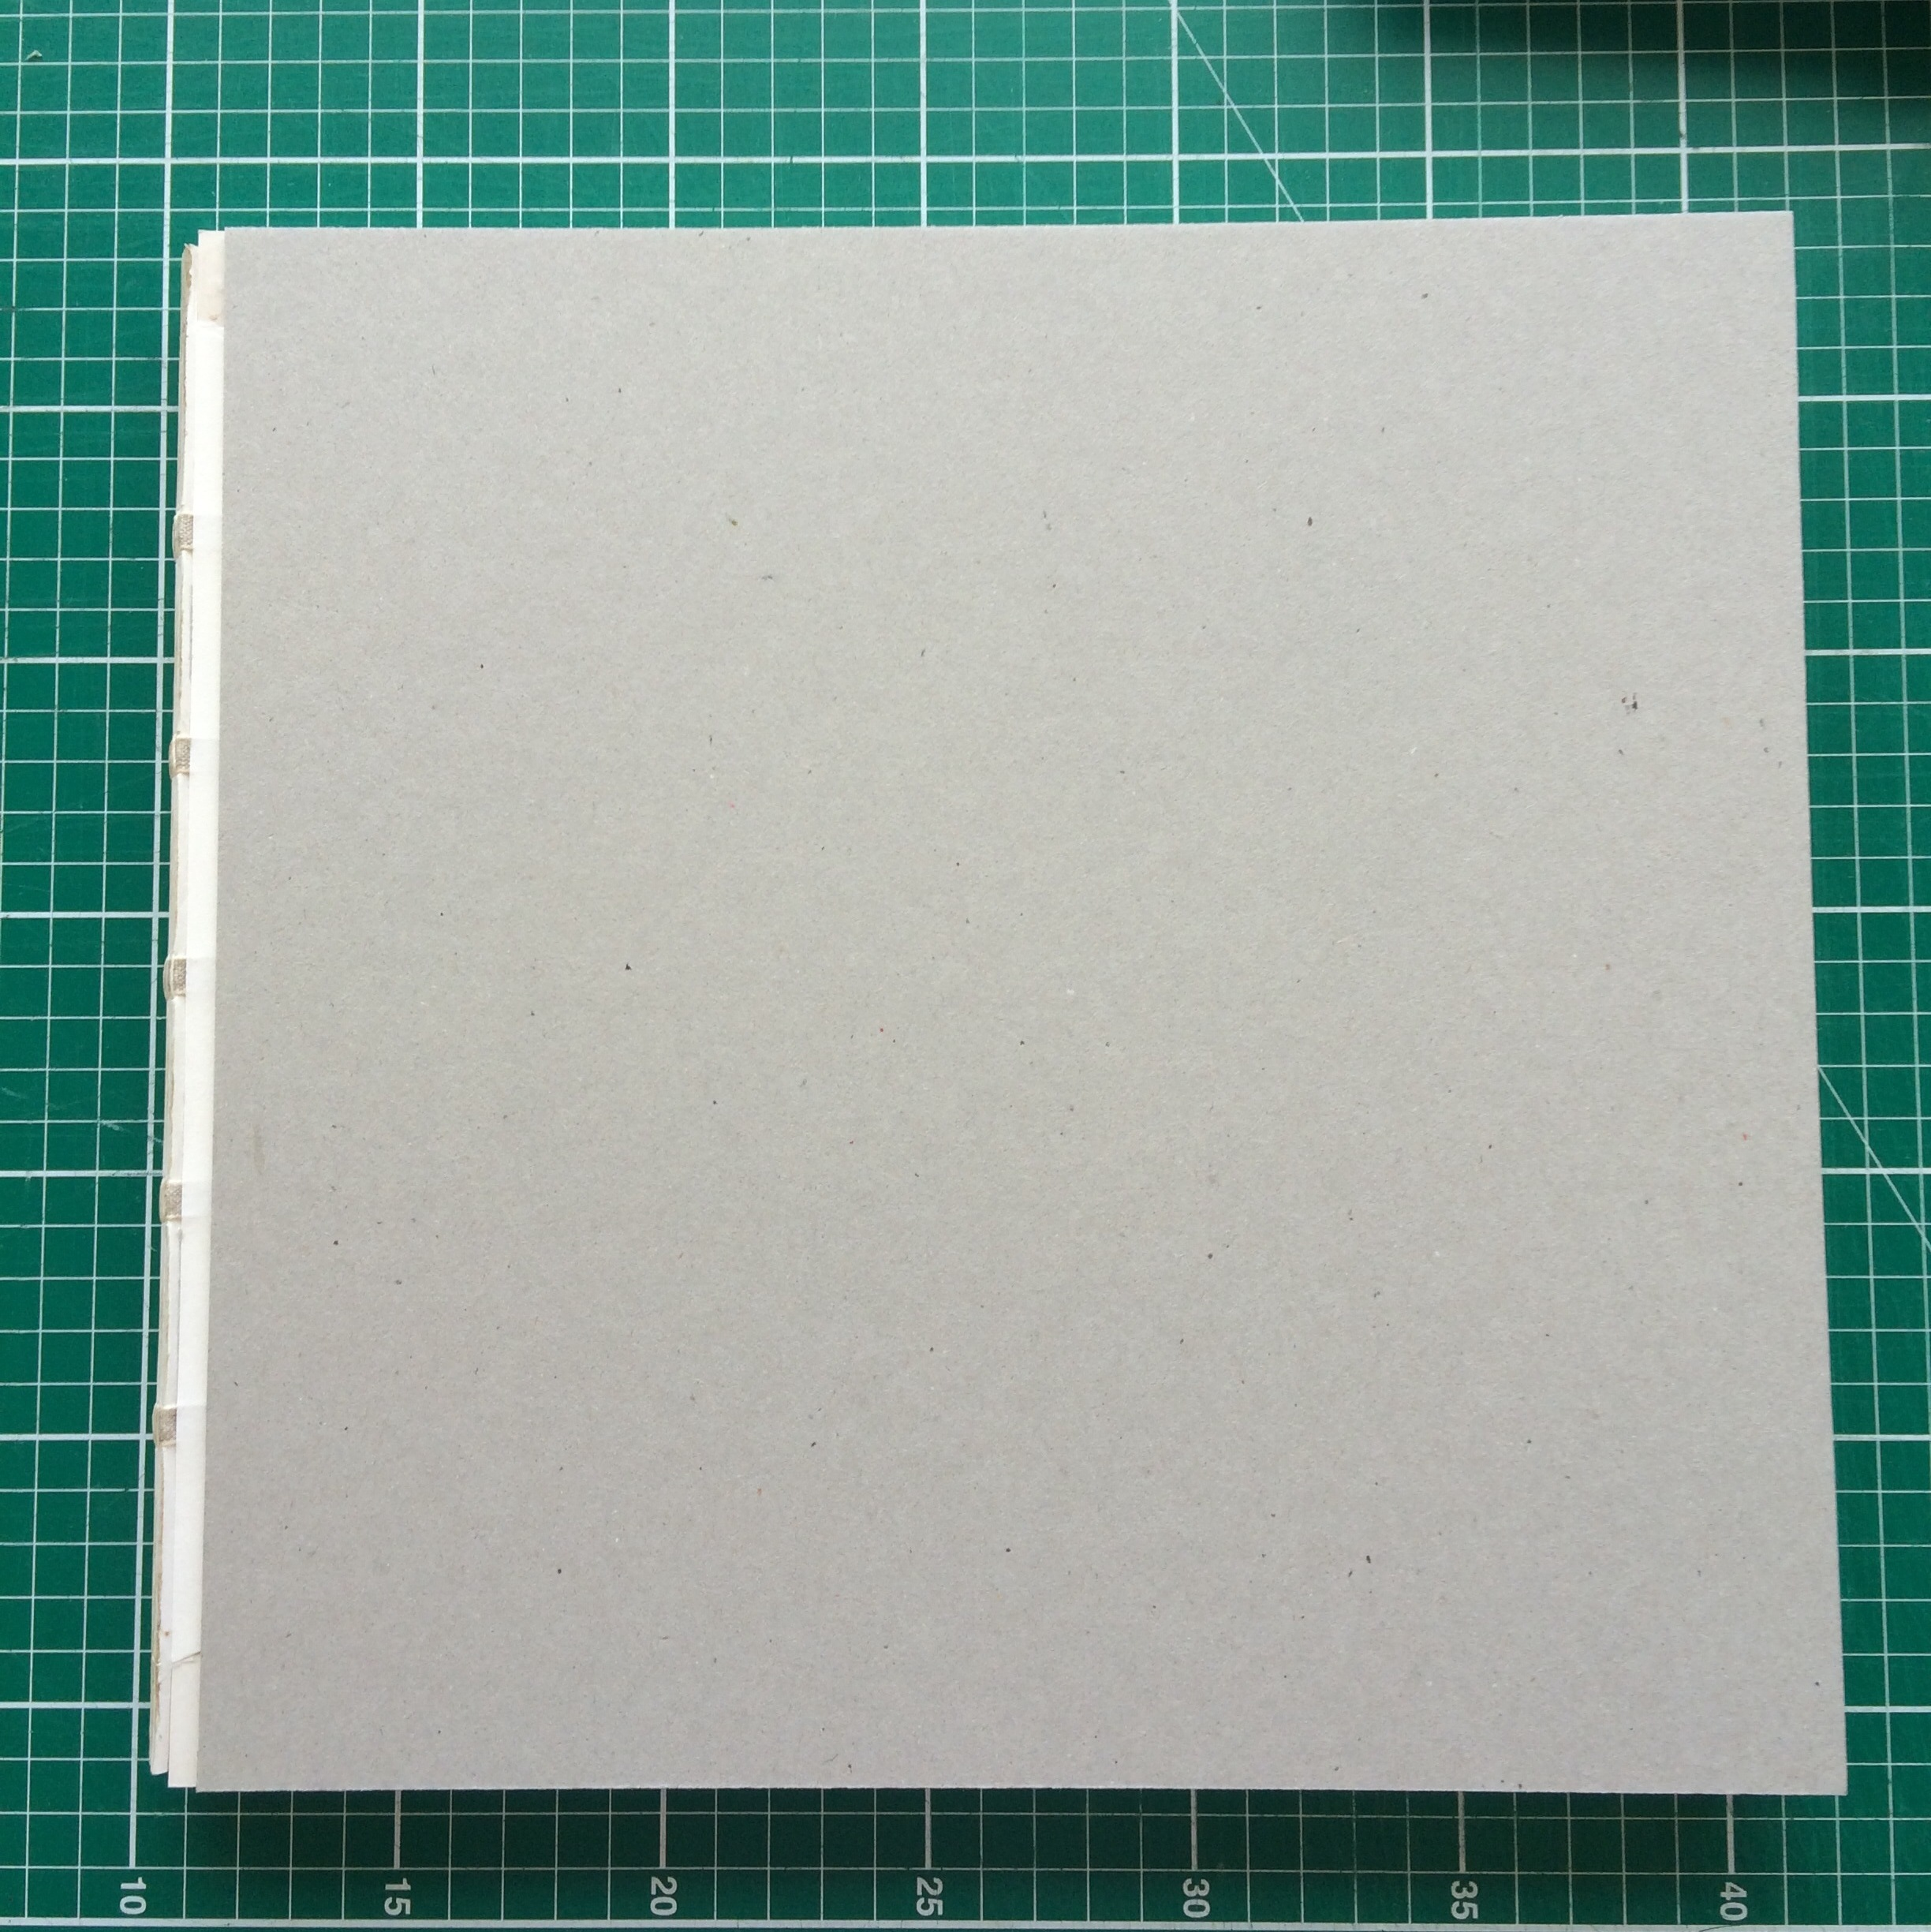 Cover boards attached to the text block.